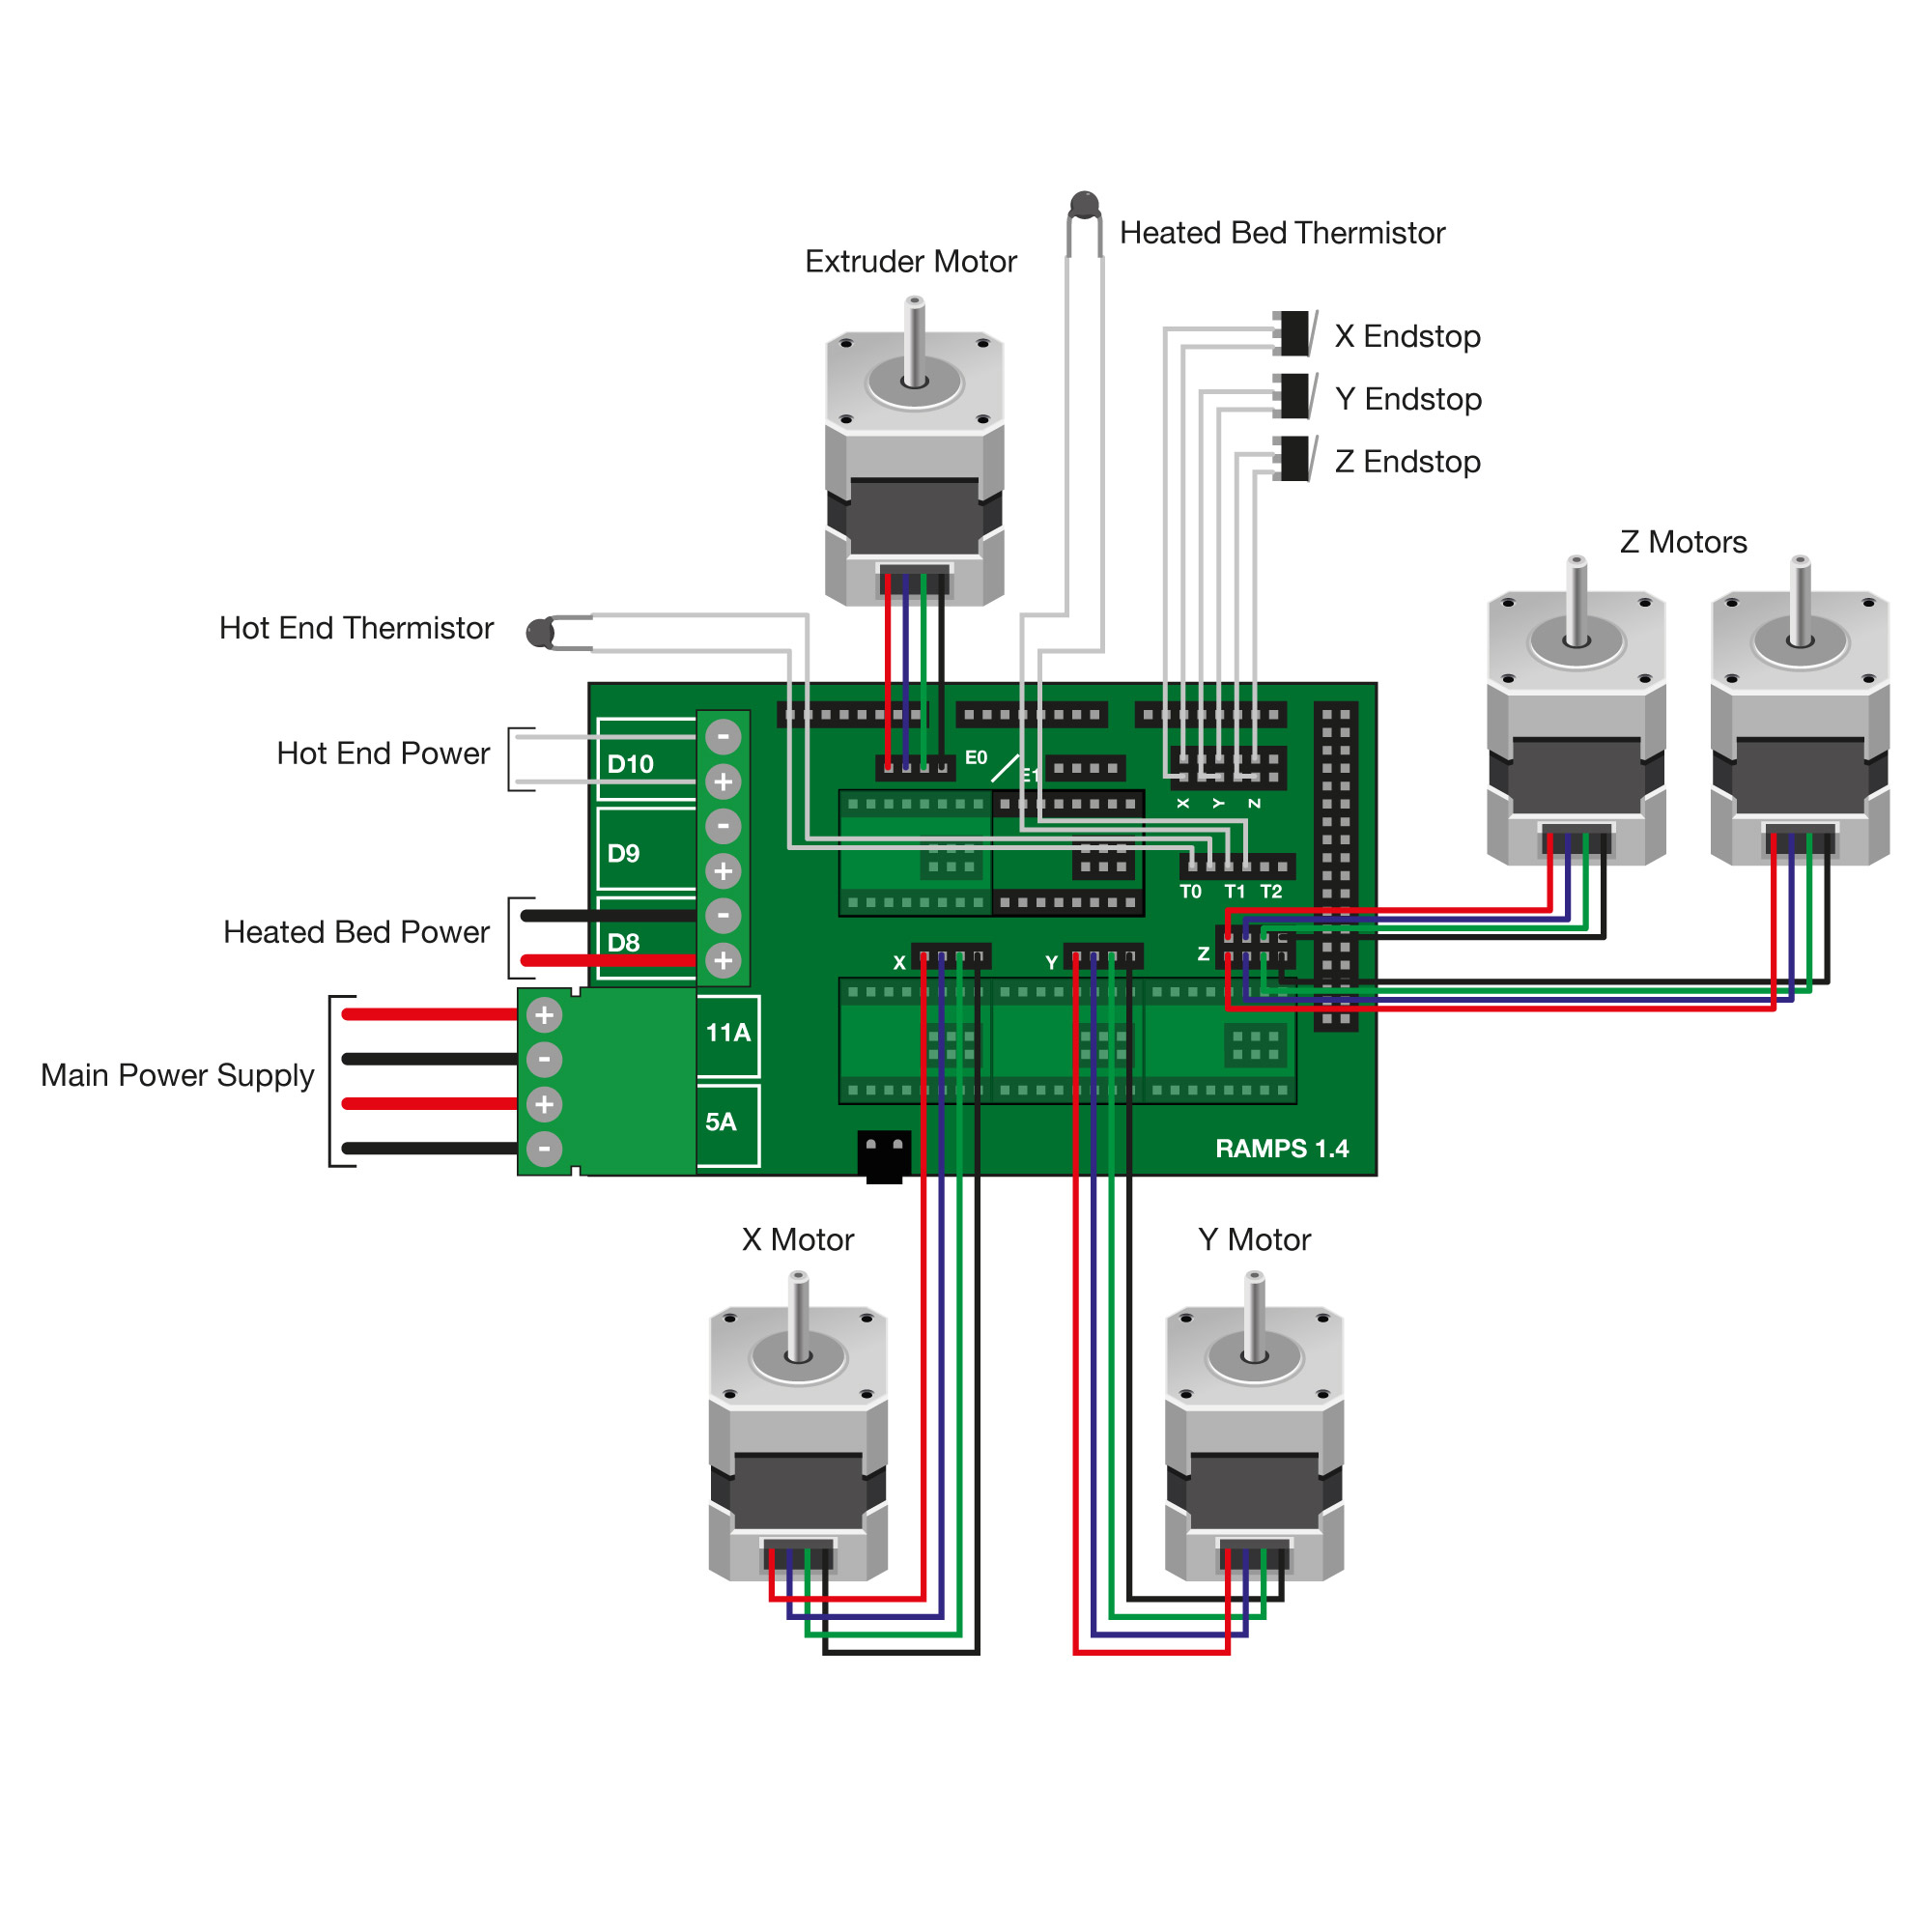 15470352354_3baf2e7bba_o reprap wiring diagram nema 17 wiring diagram \u2022 wiring diagrams j  at readyjetset.co